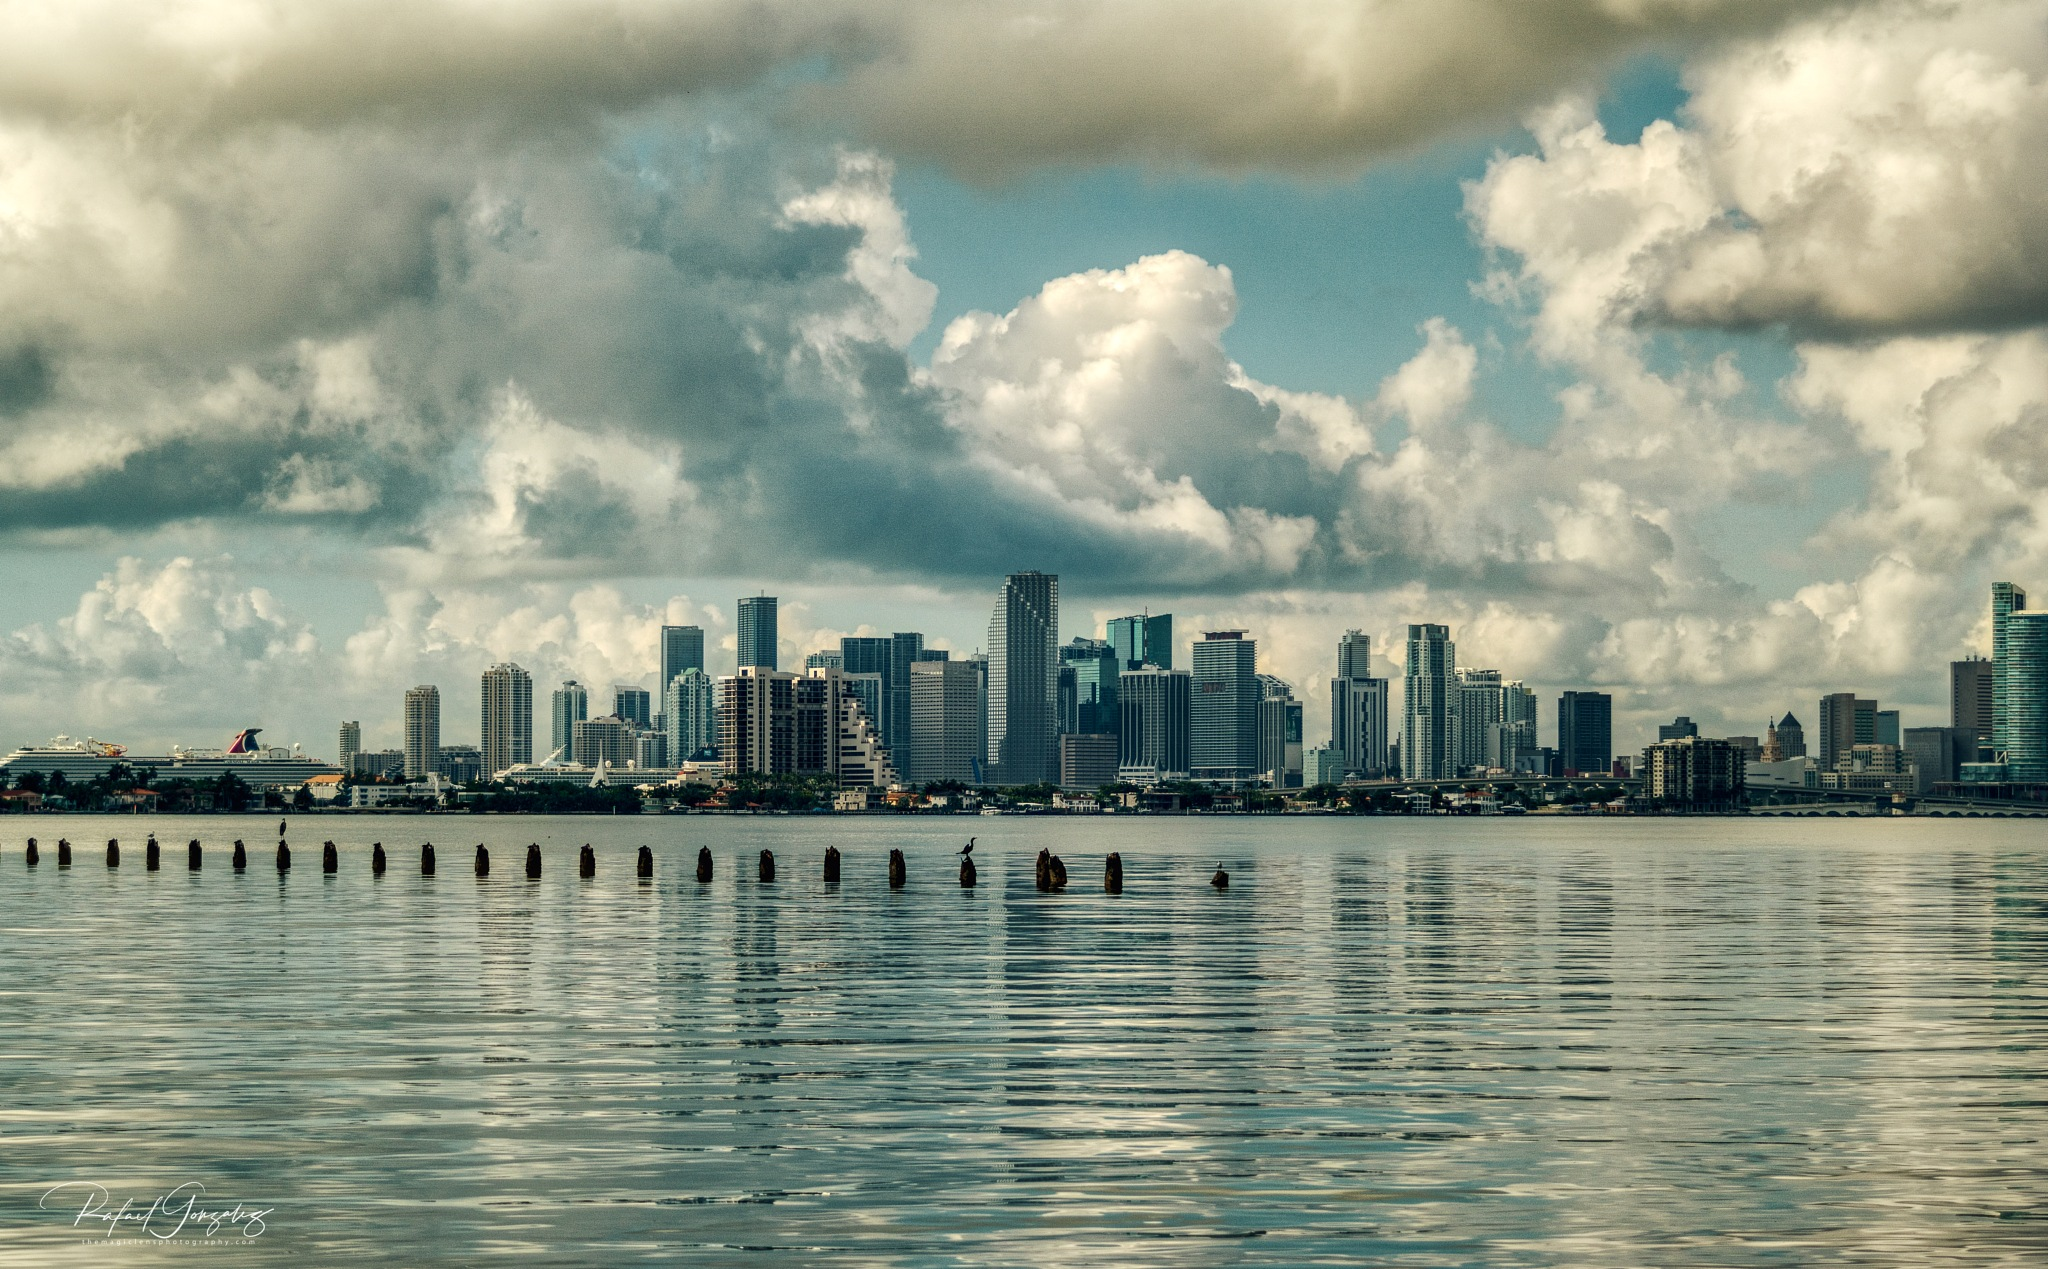 City of Miami, Morning View by themagiclensphotography